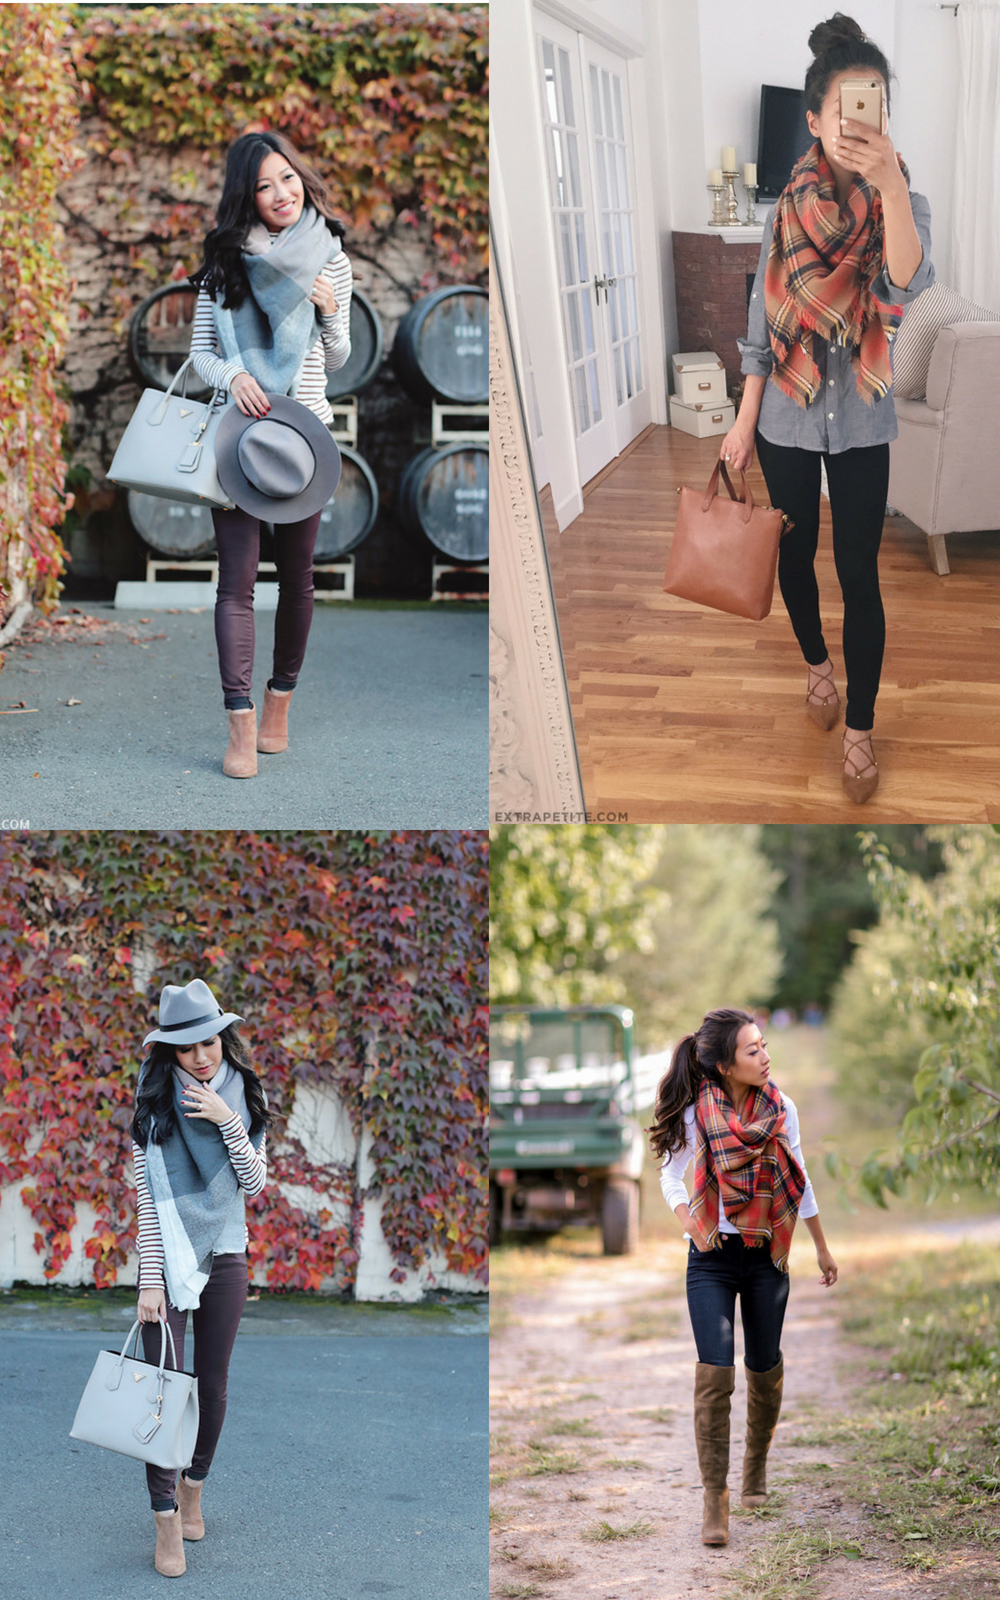 36 Trendy fall outfit ideas for women - juelzjohn